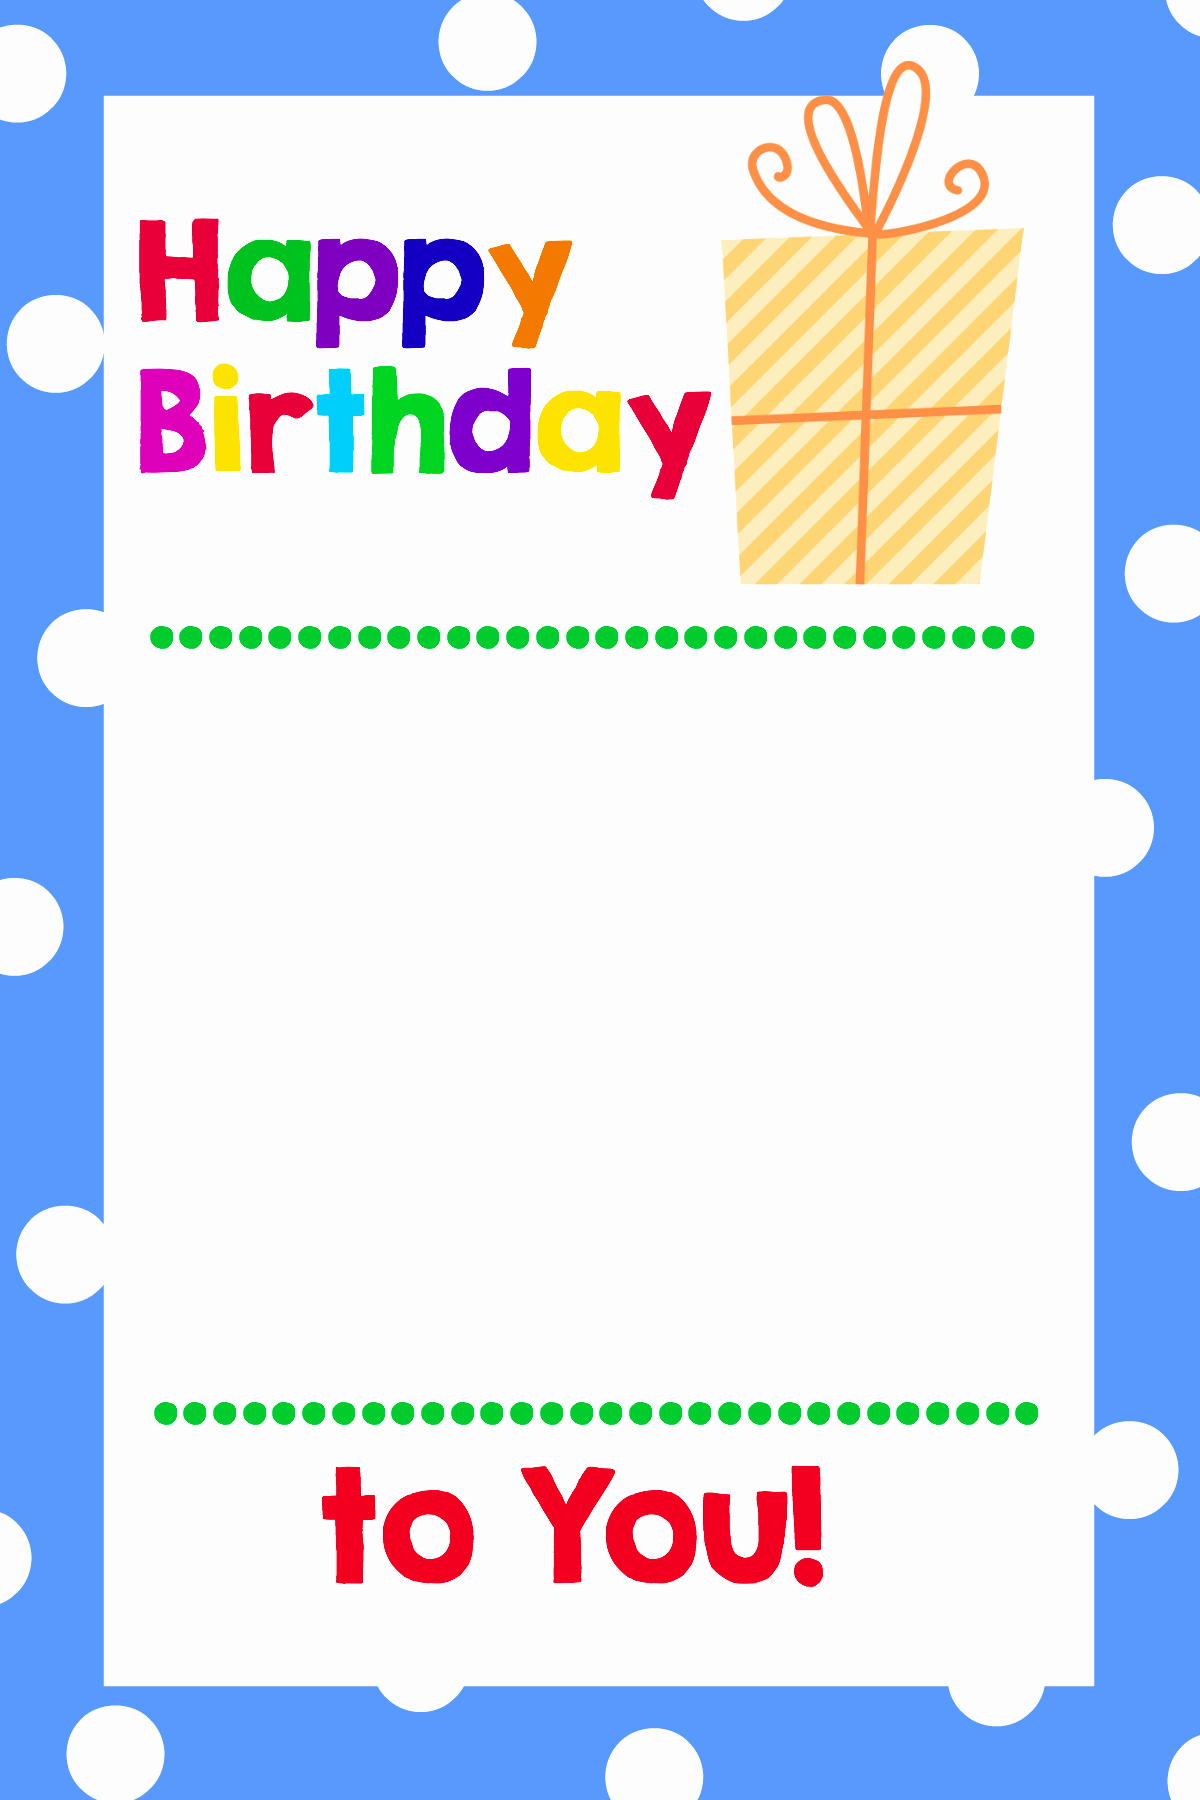 Happy Birthday Template Free Inspirational Free Printable Birthday Cards that Hold Gift Cards